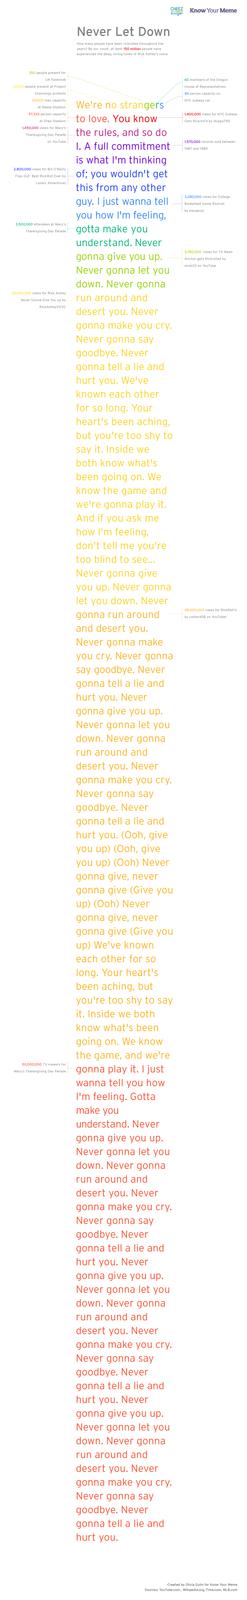 rickroll1-06.png